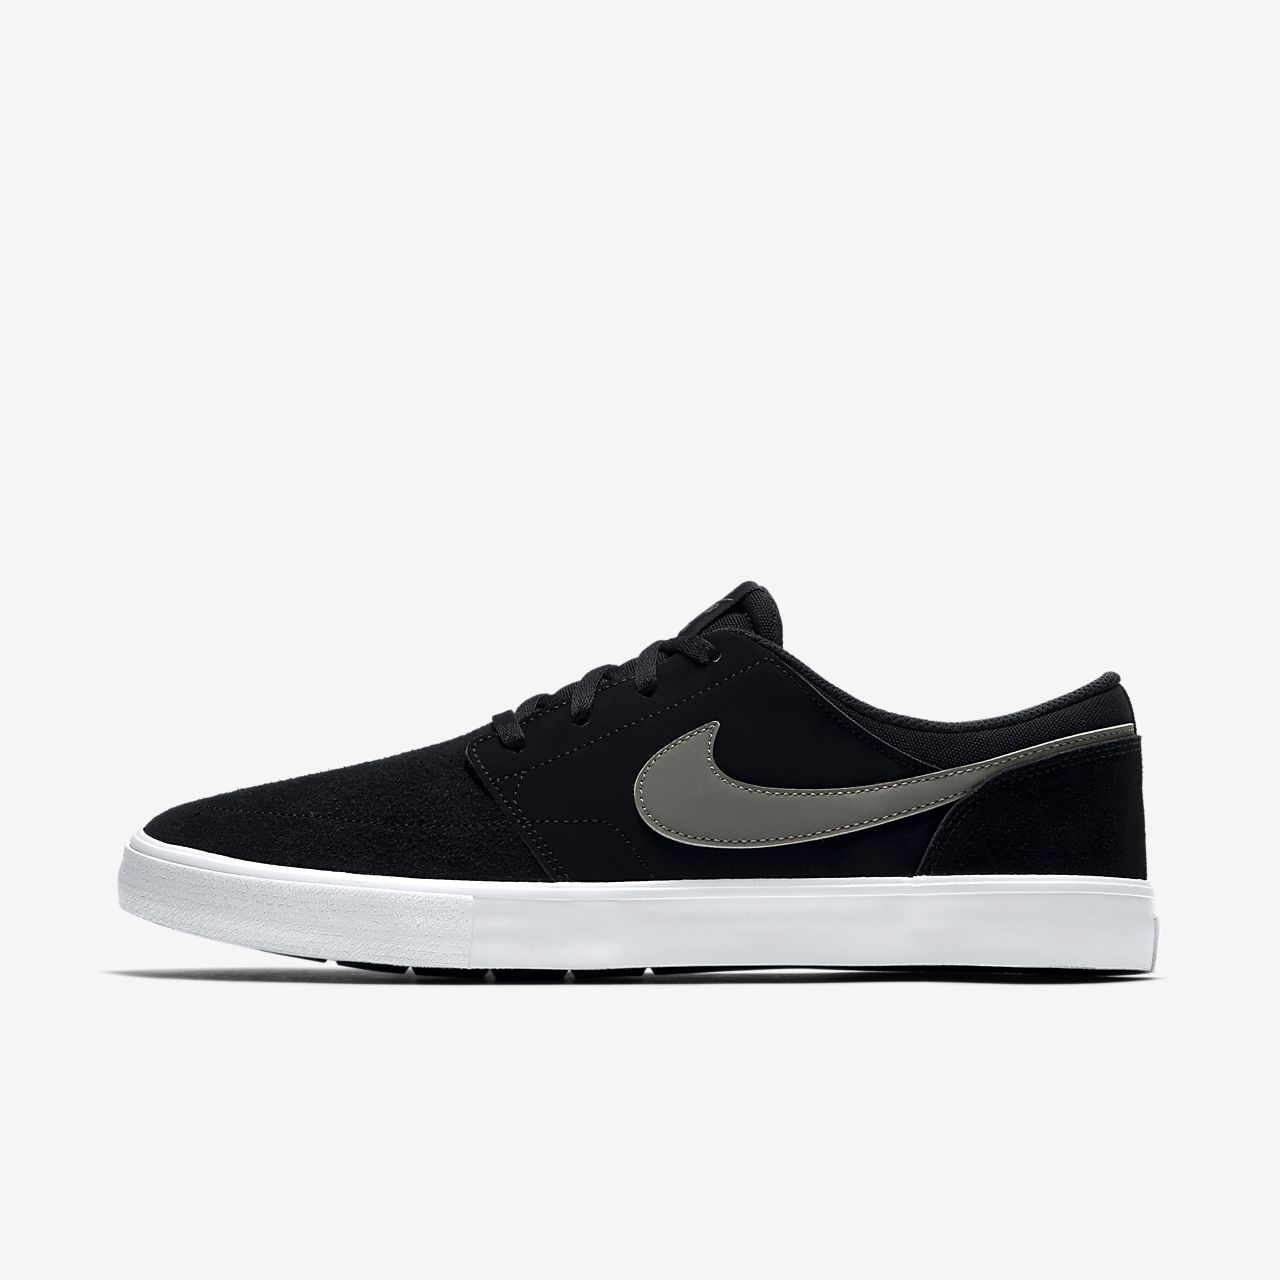 Nike SB Zoom Stefan Janoski Canvas Men's Skateboarding Shoes Black/Brown vE1674E